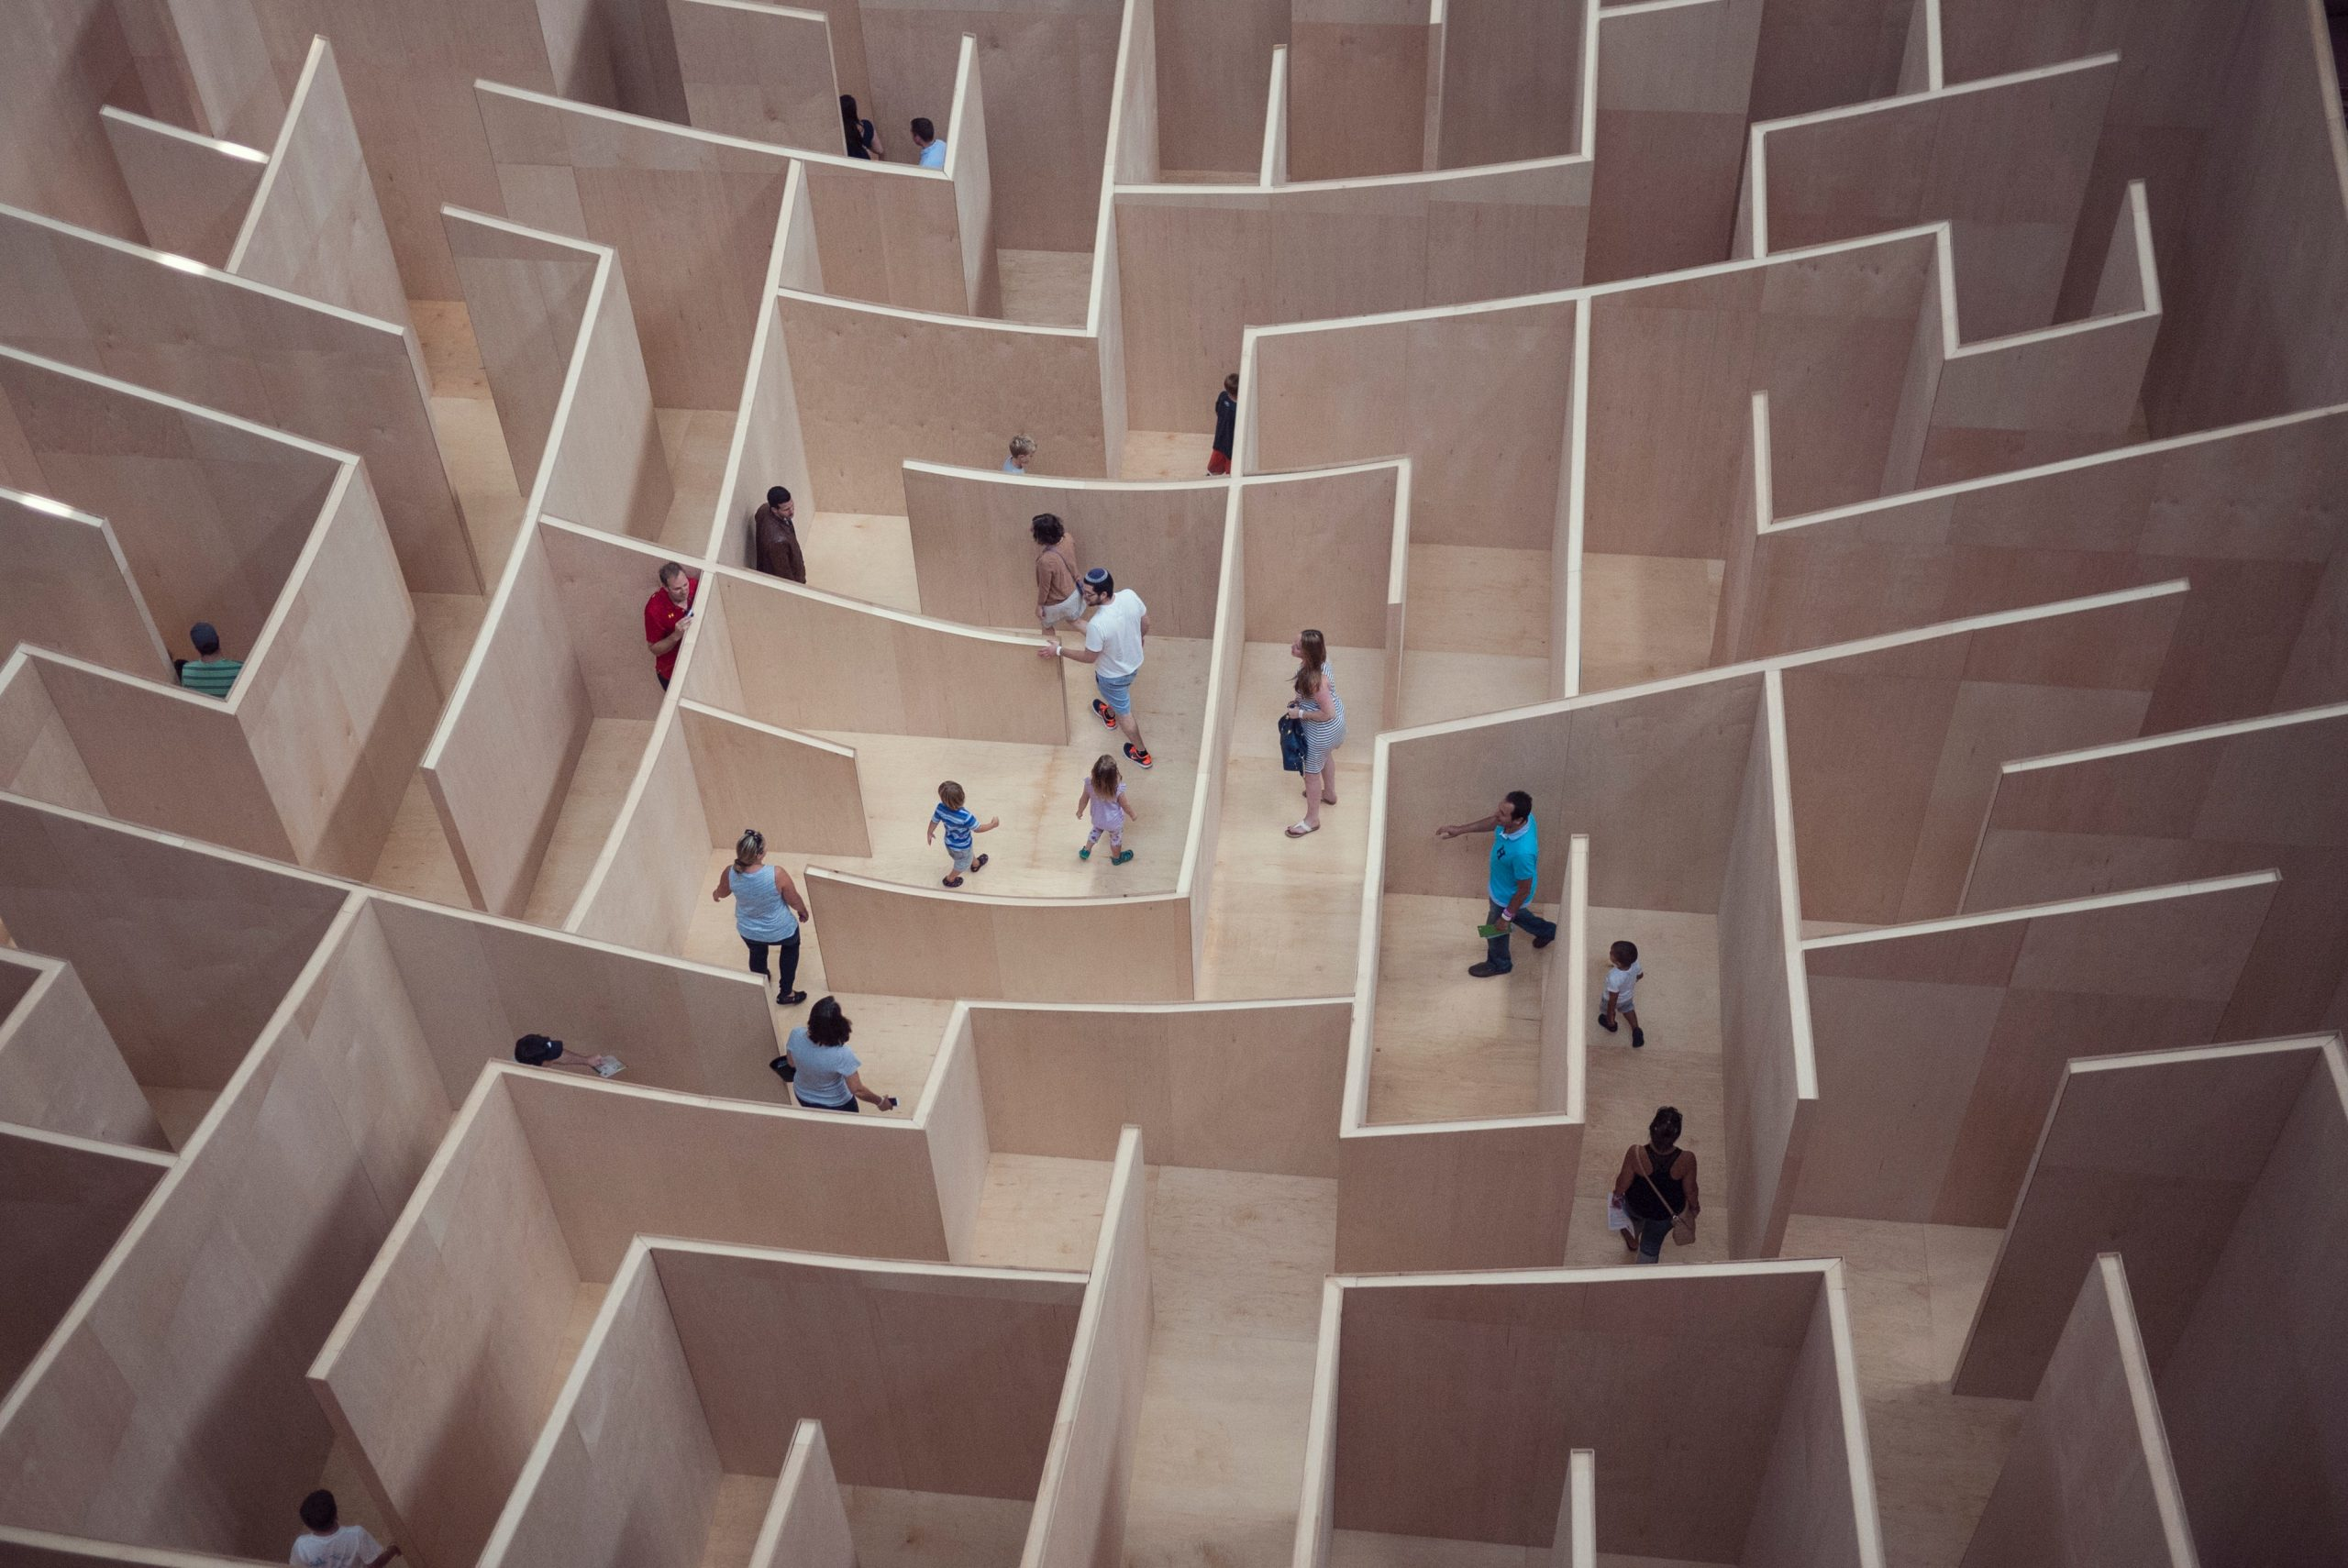 People trying to find their way through a wooden maze